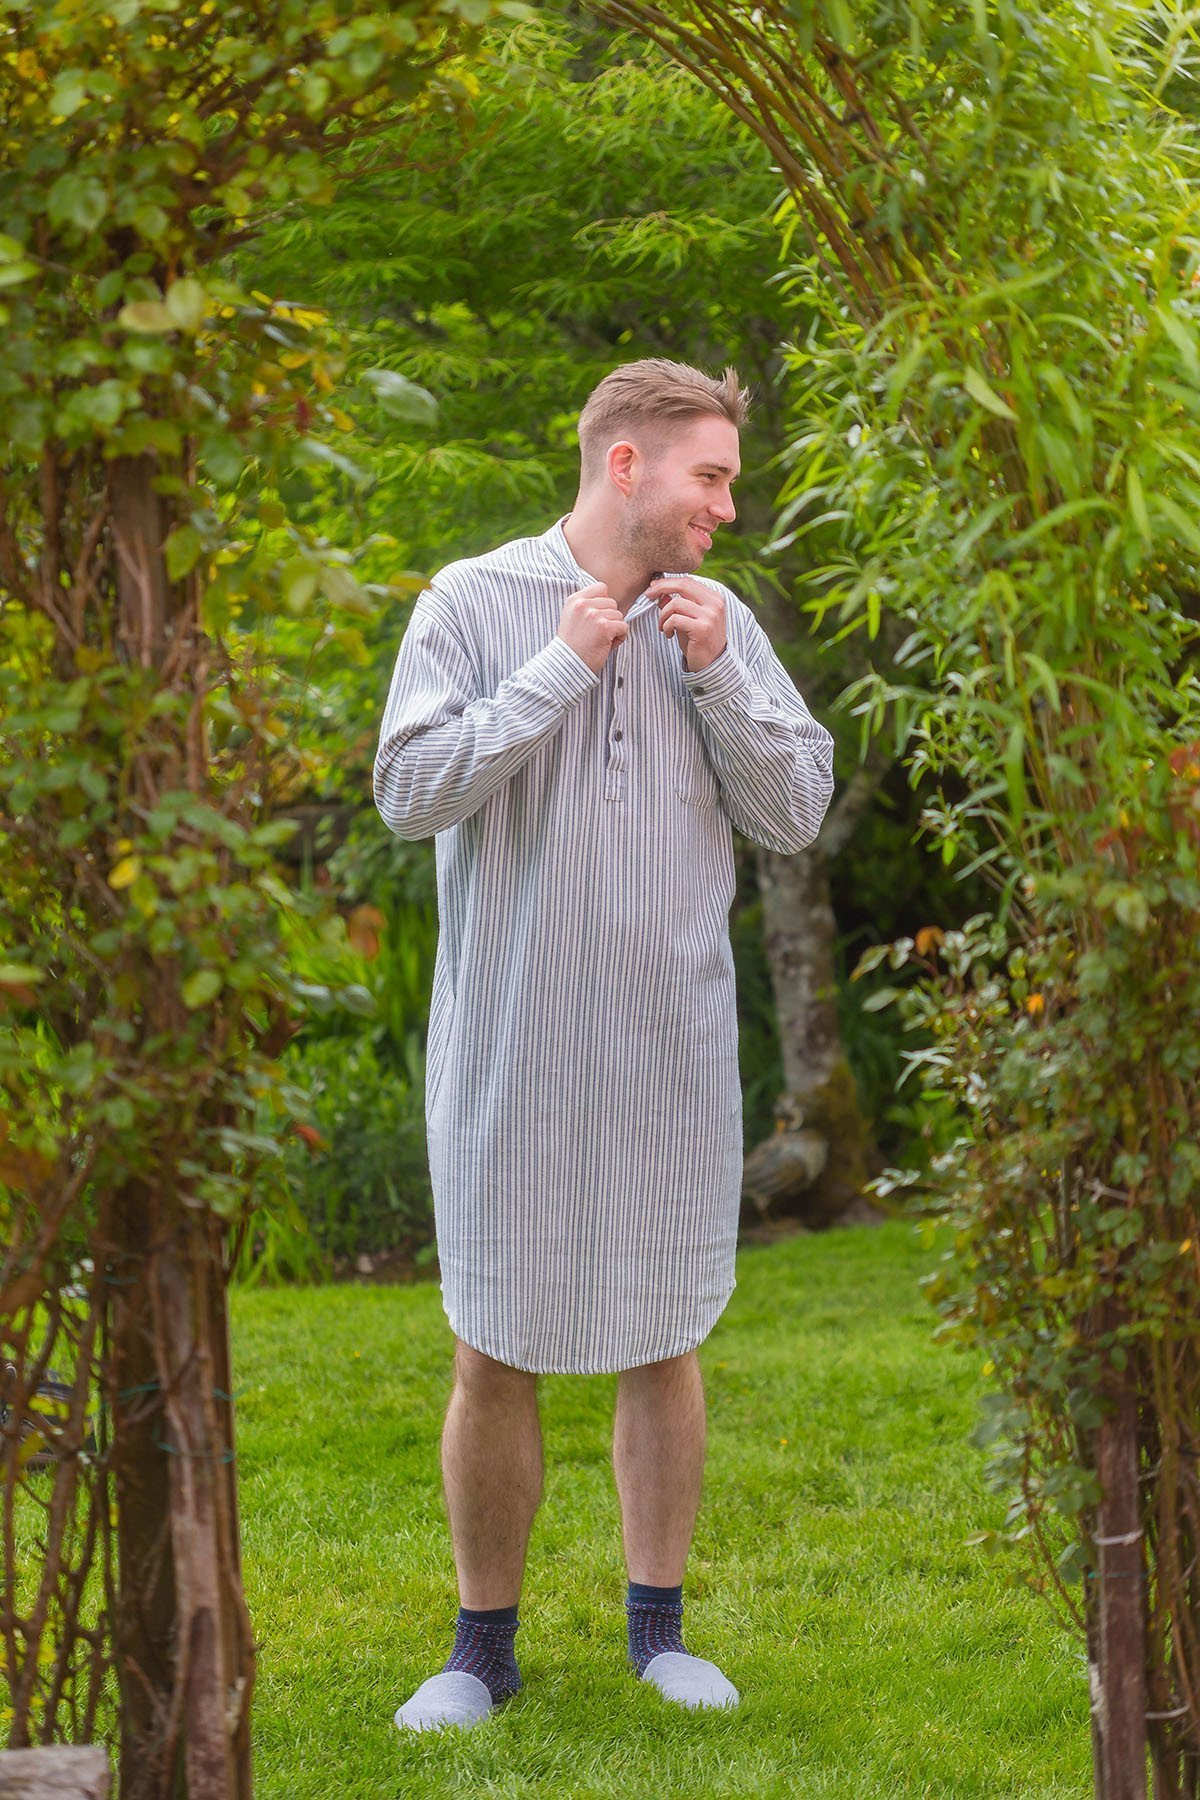 ... Unisex Traditional Flannel Nightshirt. Flannel Night Shirt Blue   Ivory  Striped a4a3b93bf